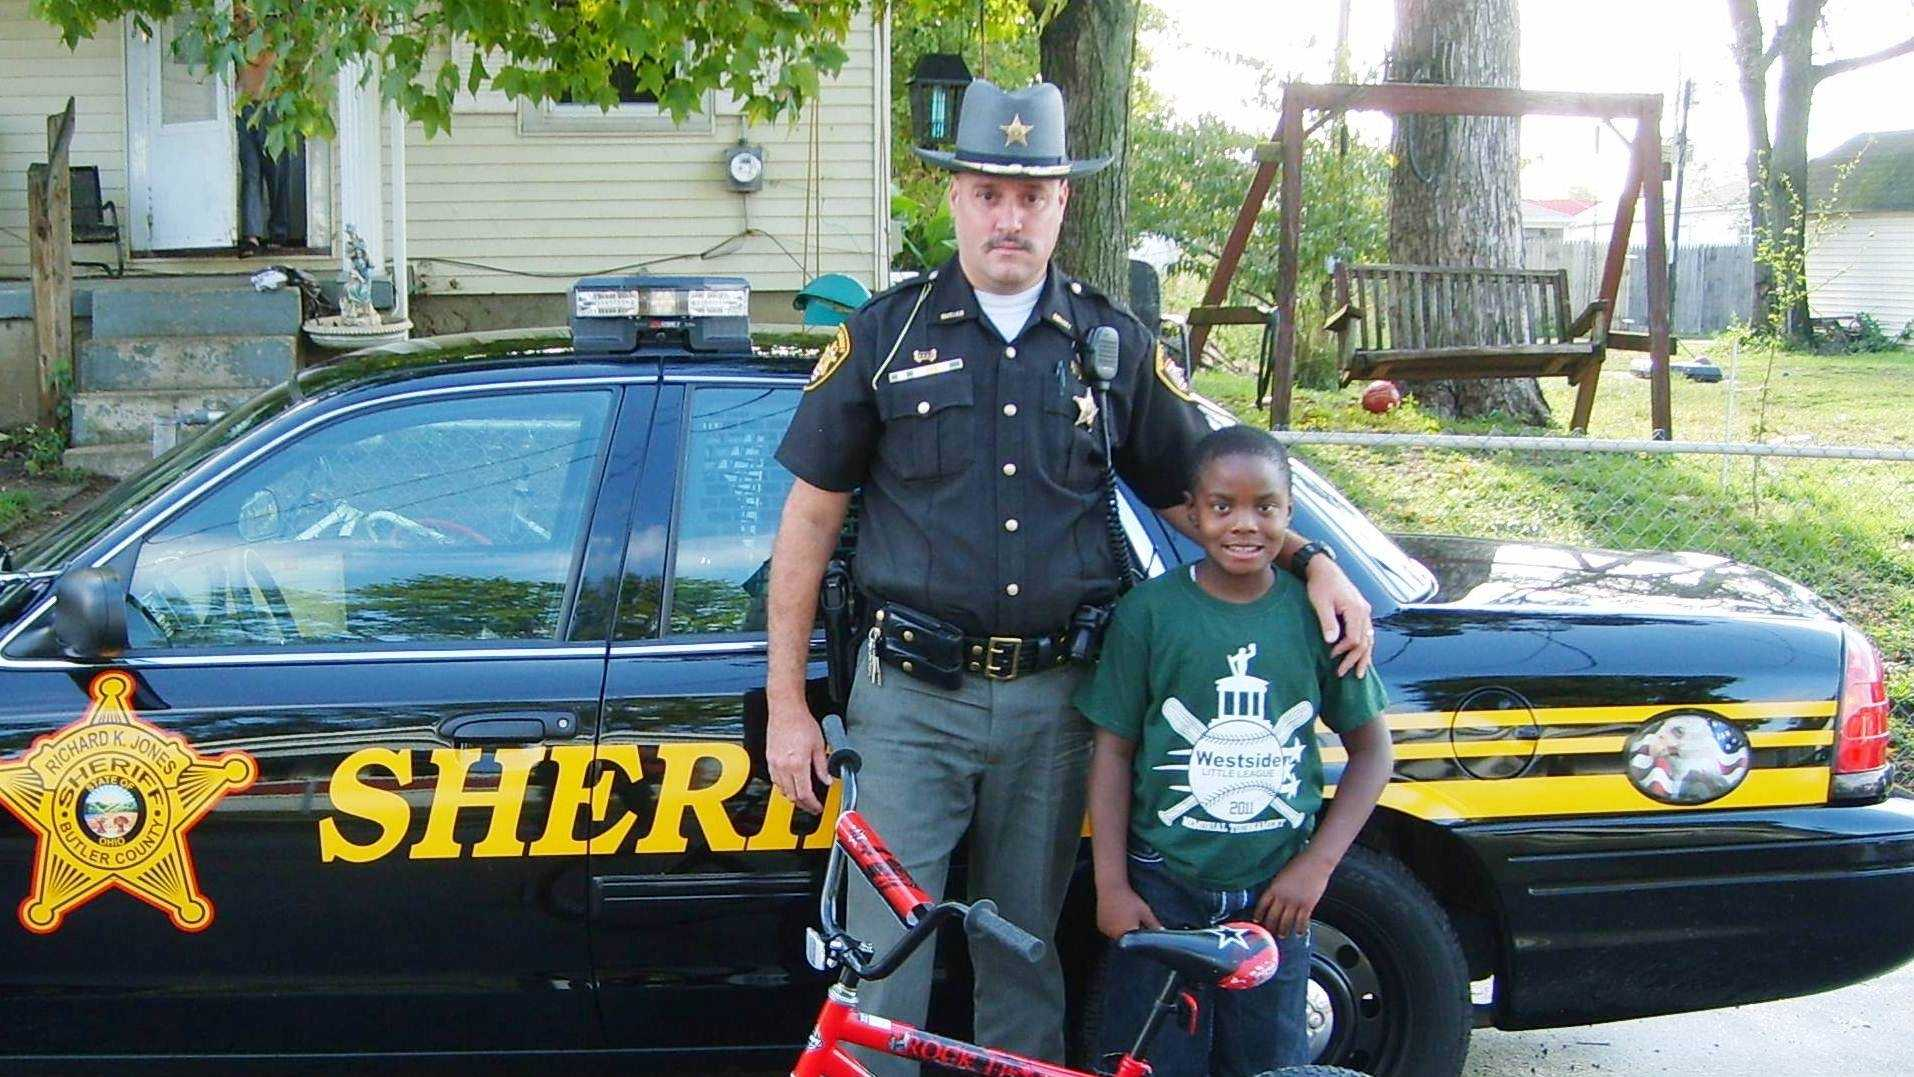 Deputy helps boy replace stolen bicycle